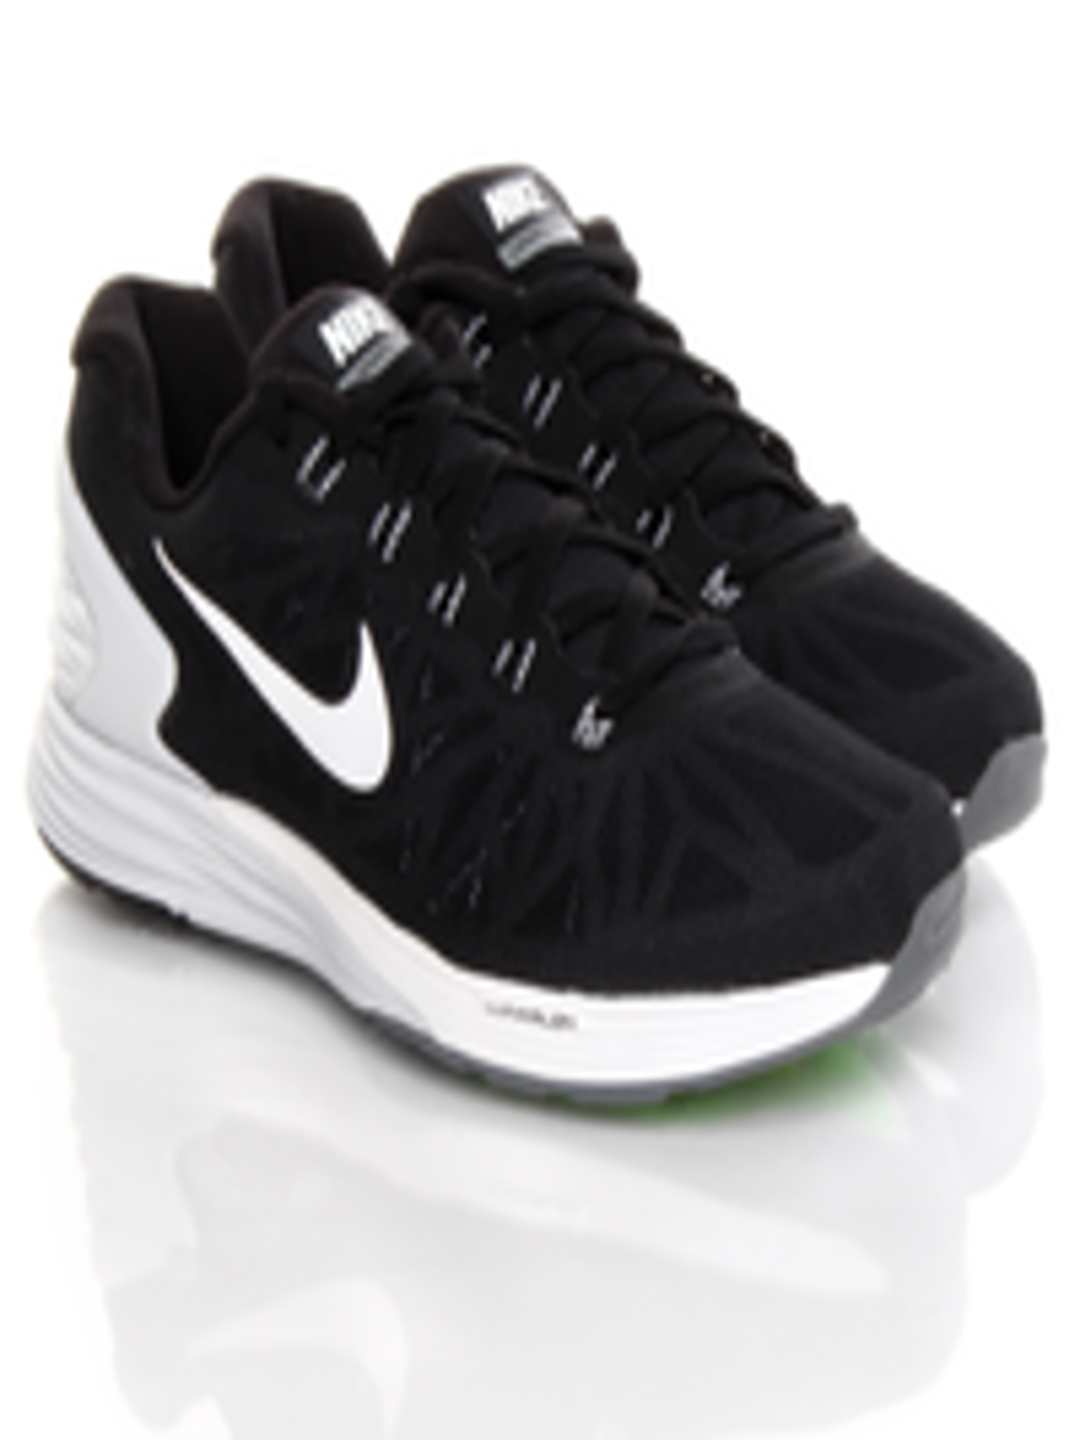 011d6d871da9d Buy Nike Men Black Lunarglide 6 Running Shoes - Sports Shoes for Men 354900